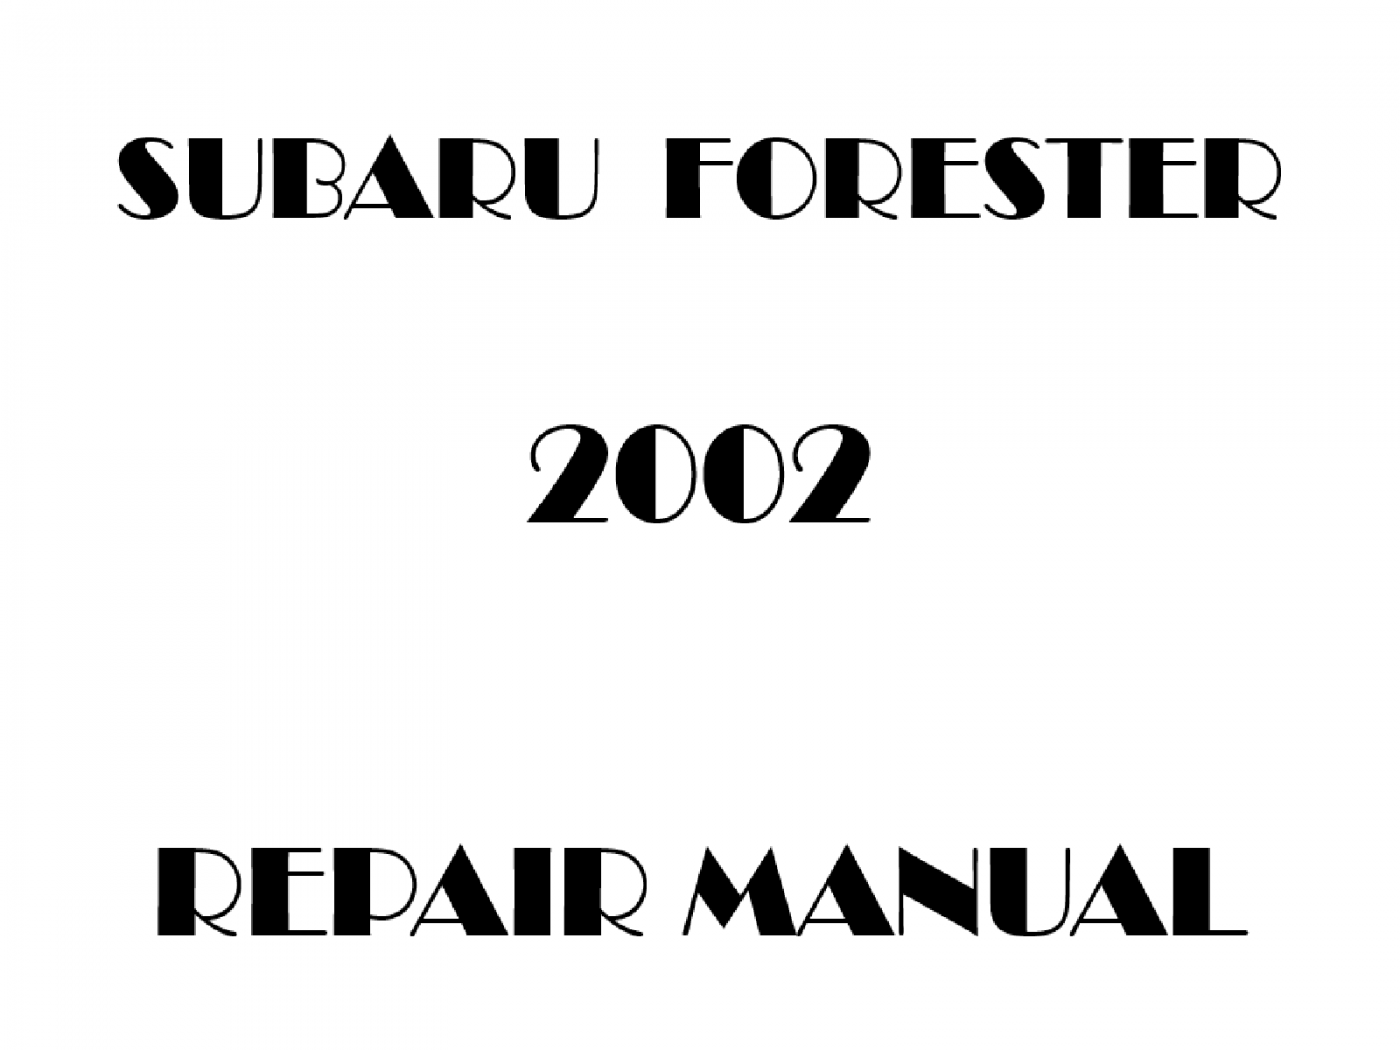 2002 Subaru Forester repair manual